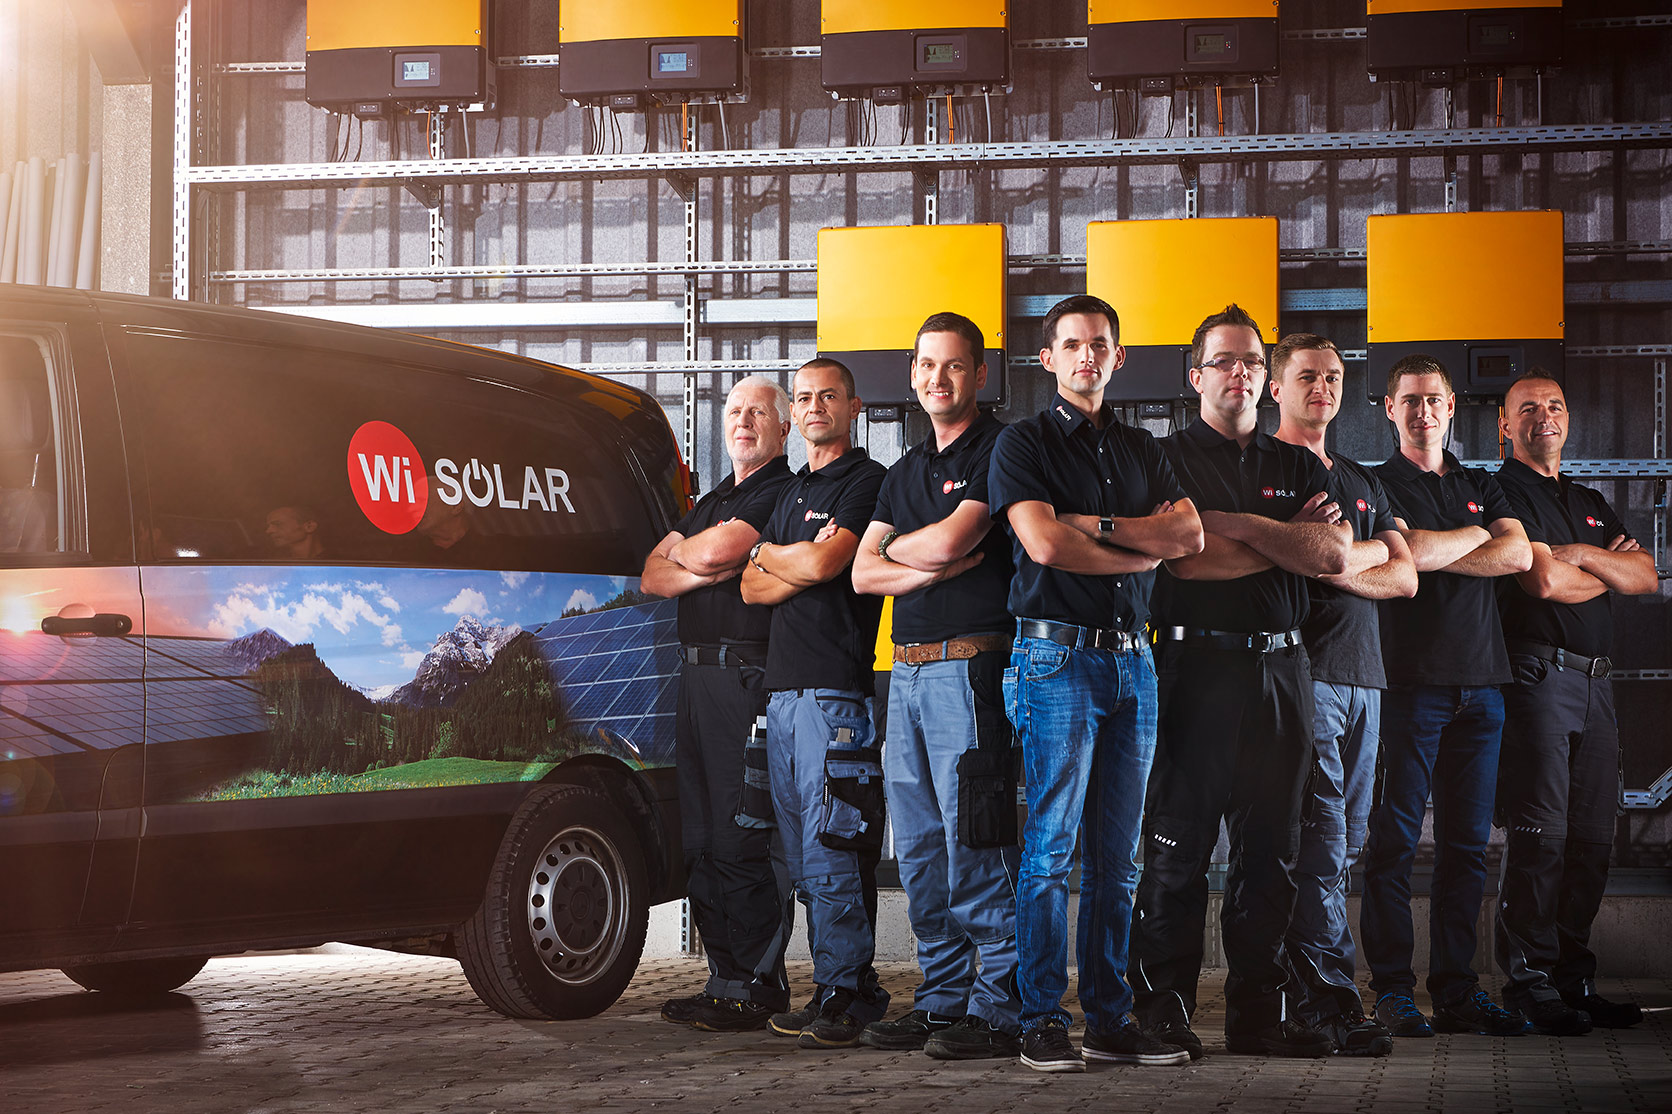 leistungen-galerie-wisolar-team-men-at-work